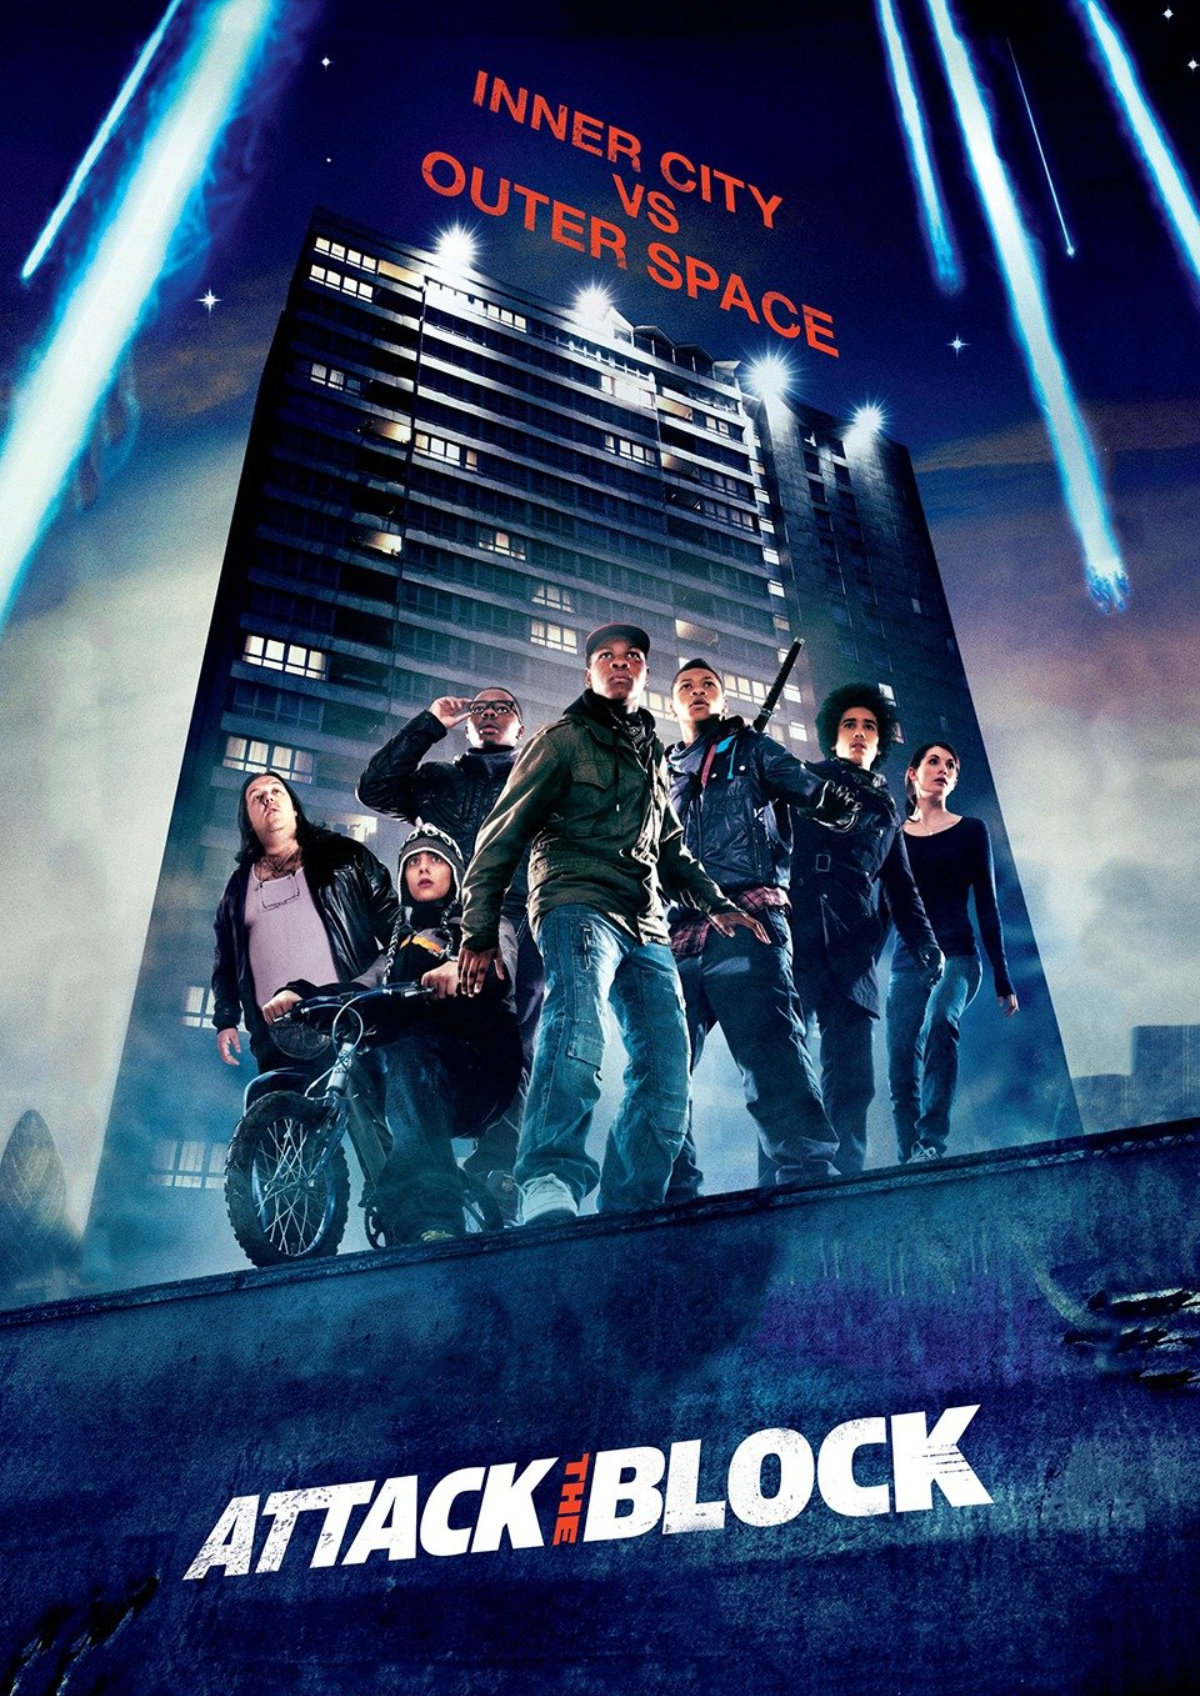 'Attack the Block' movie poster